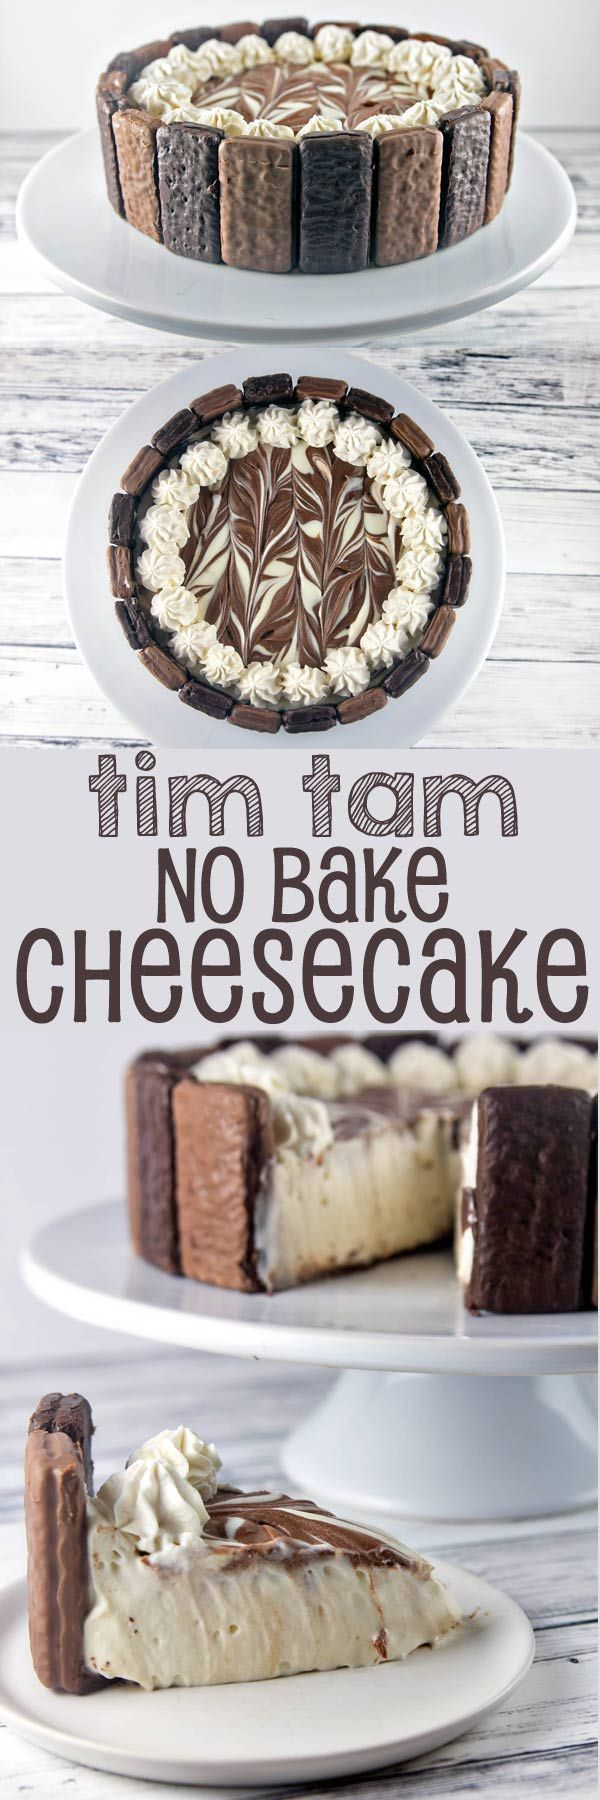 Tim Tam No Bake Cheesecake: the perfect quick and easy holiday entertaining dessert. Crunchy Tim Tams paired with a light, smooth no bake cheesecake filling, and a pure chocolate crust. Heavenly! {Bunsen Burner Bakery}: